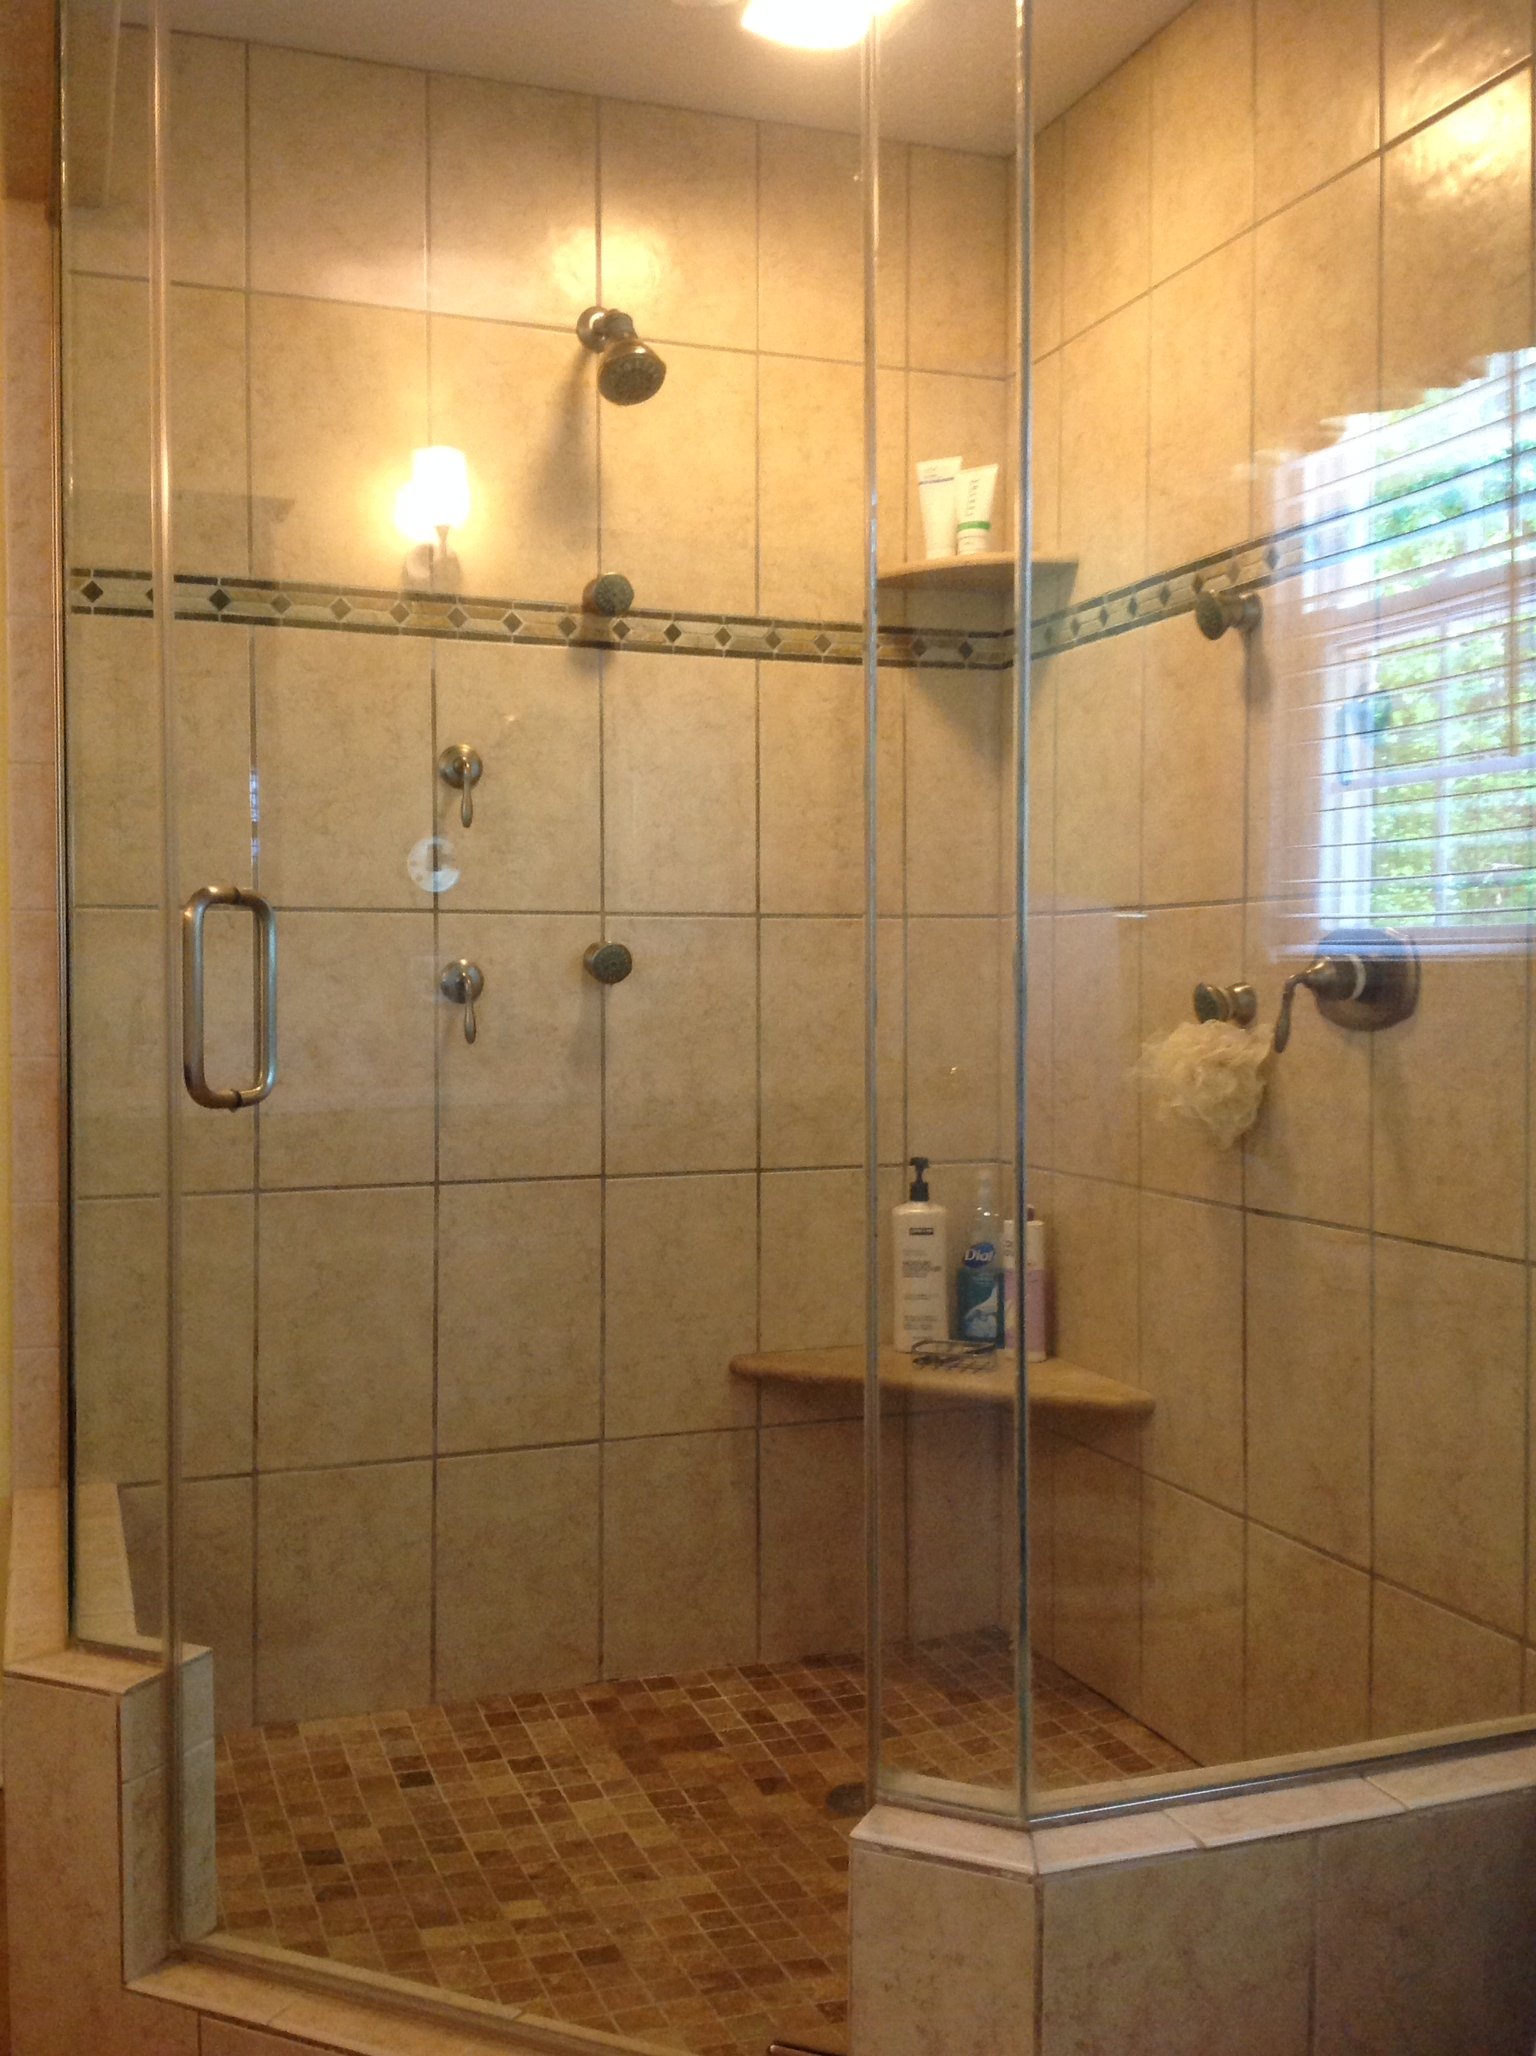 3 Tips For Remodeling Your Bathroom - Classic Construction Blog